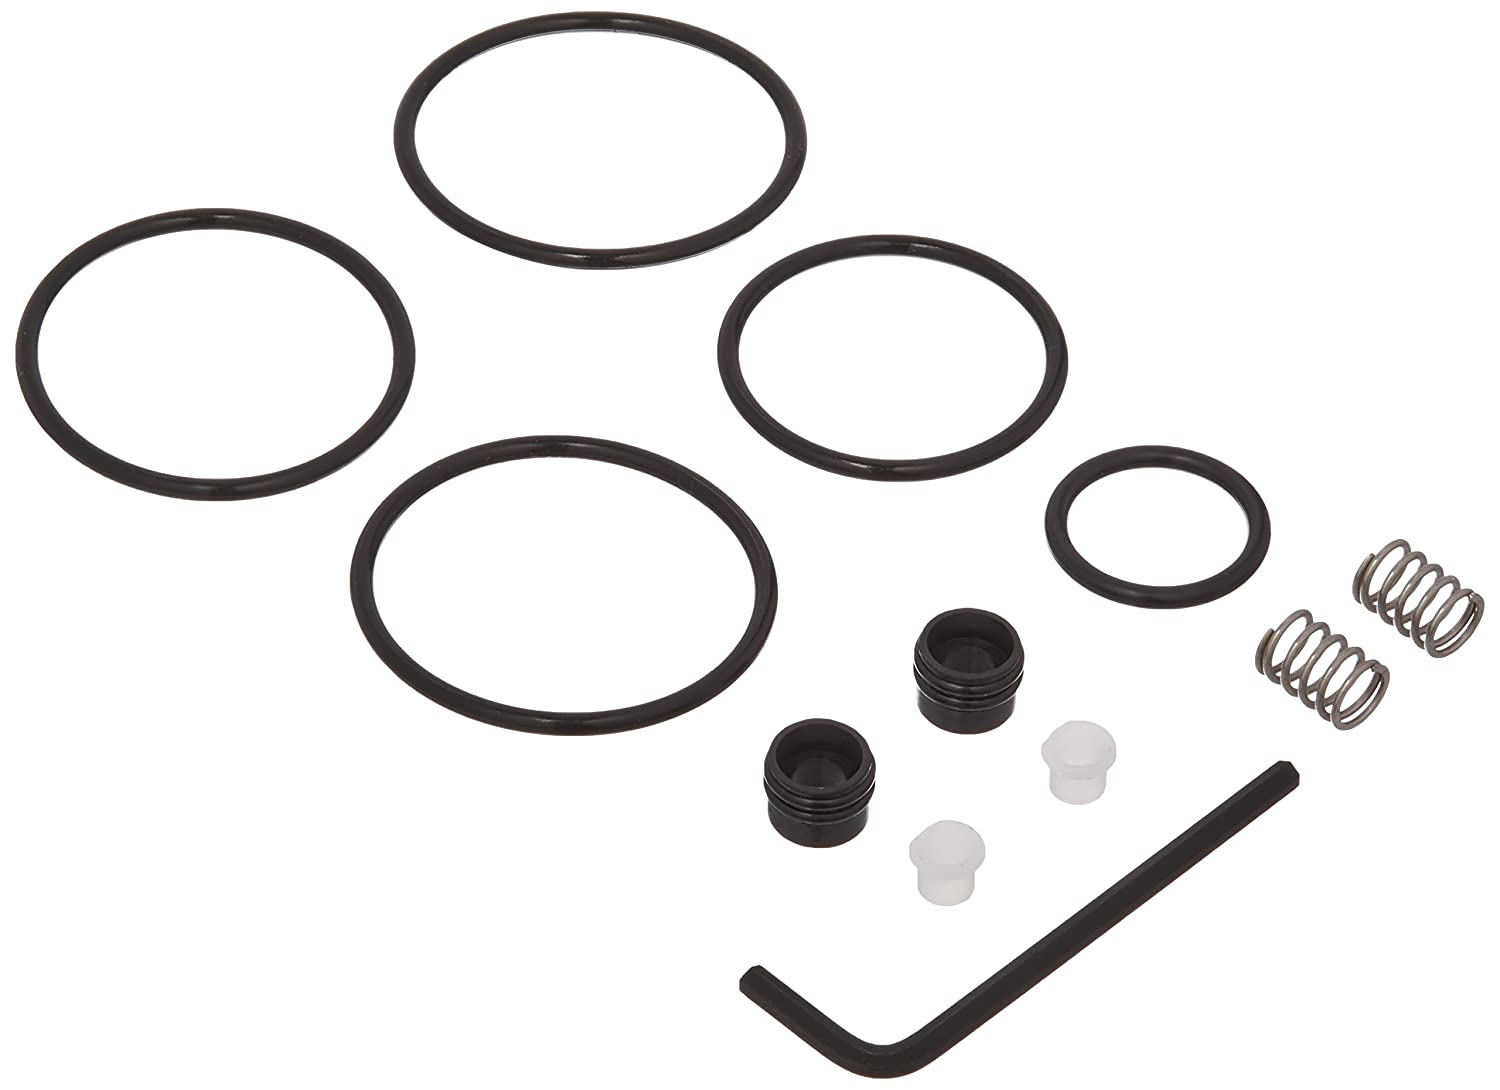 Danco 80688 Repair Kit for Valley Faucets - Valley Single Handle ...